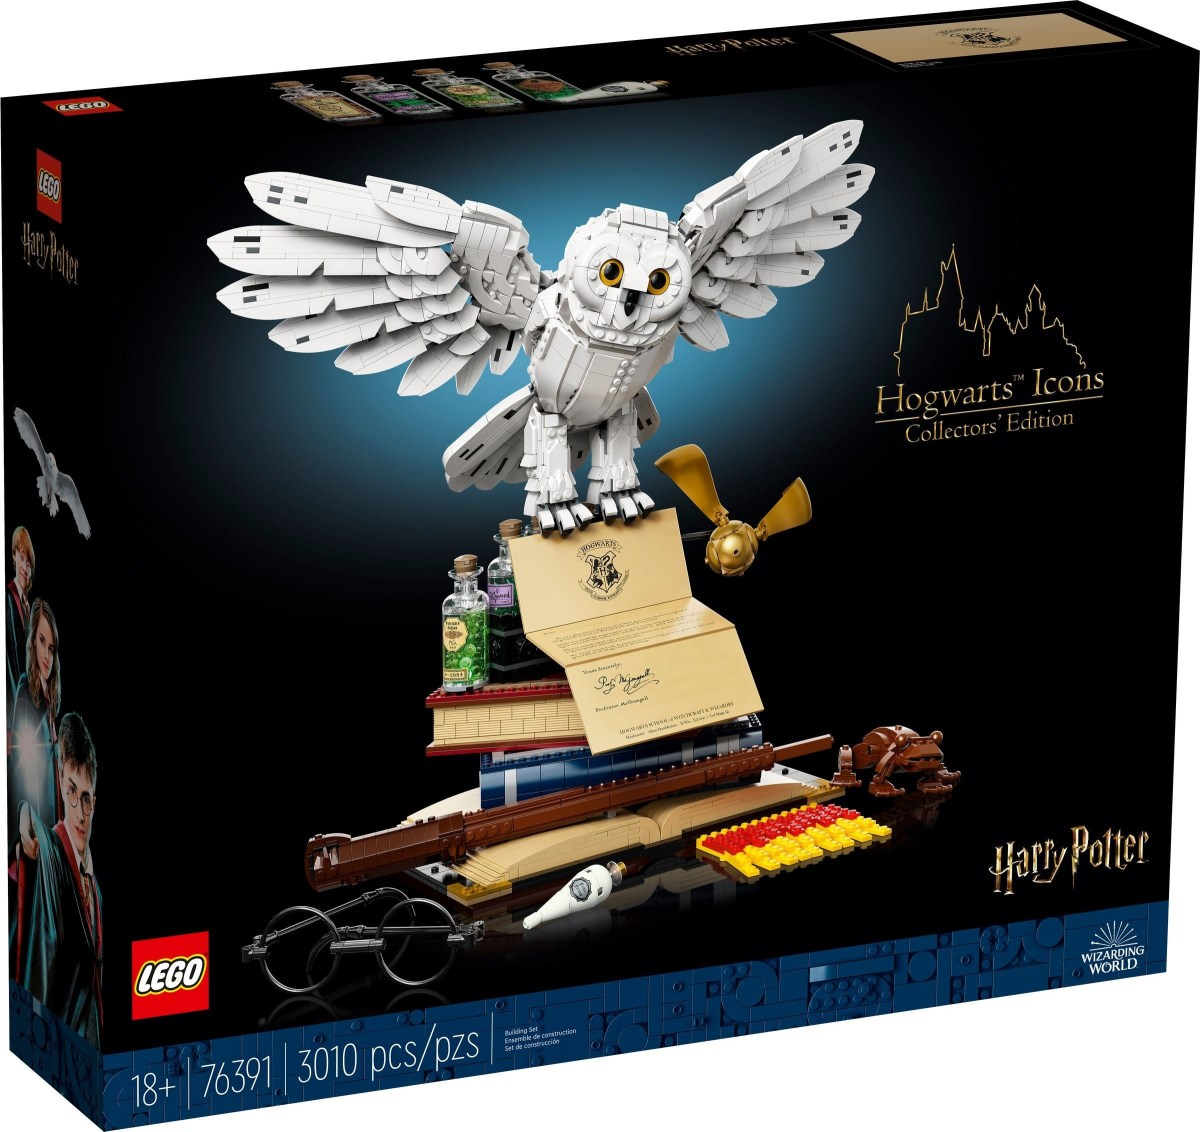 LEGO Harry Potter Hogwarts Icons – Collectors' Edition (76391) Now Available for Pre-Order